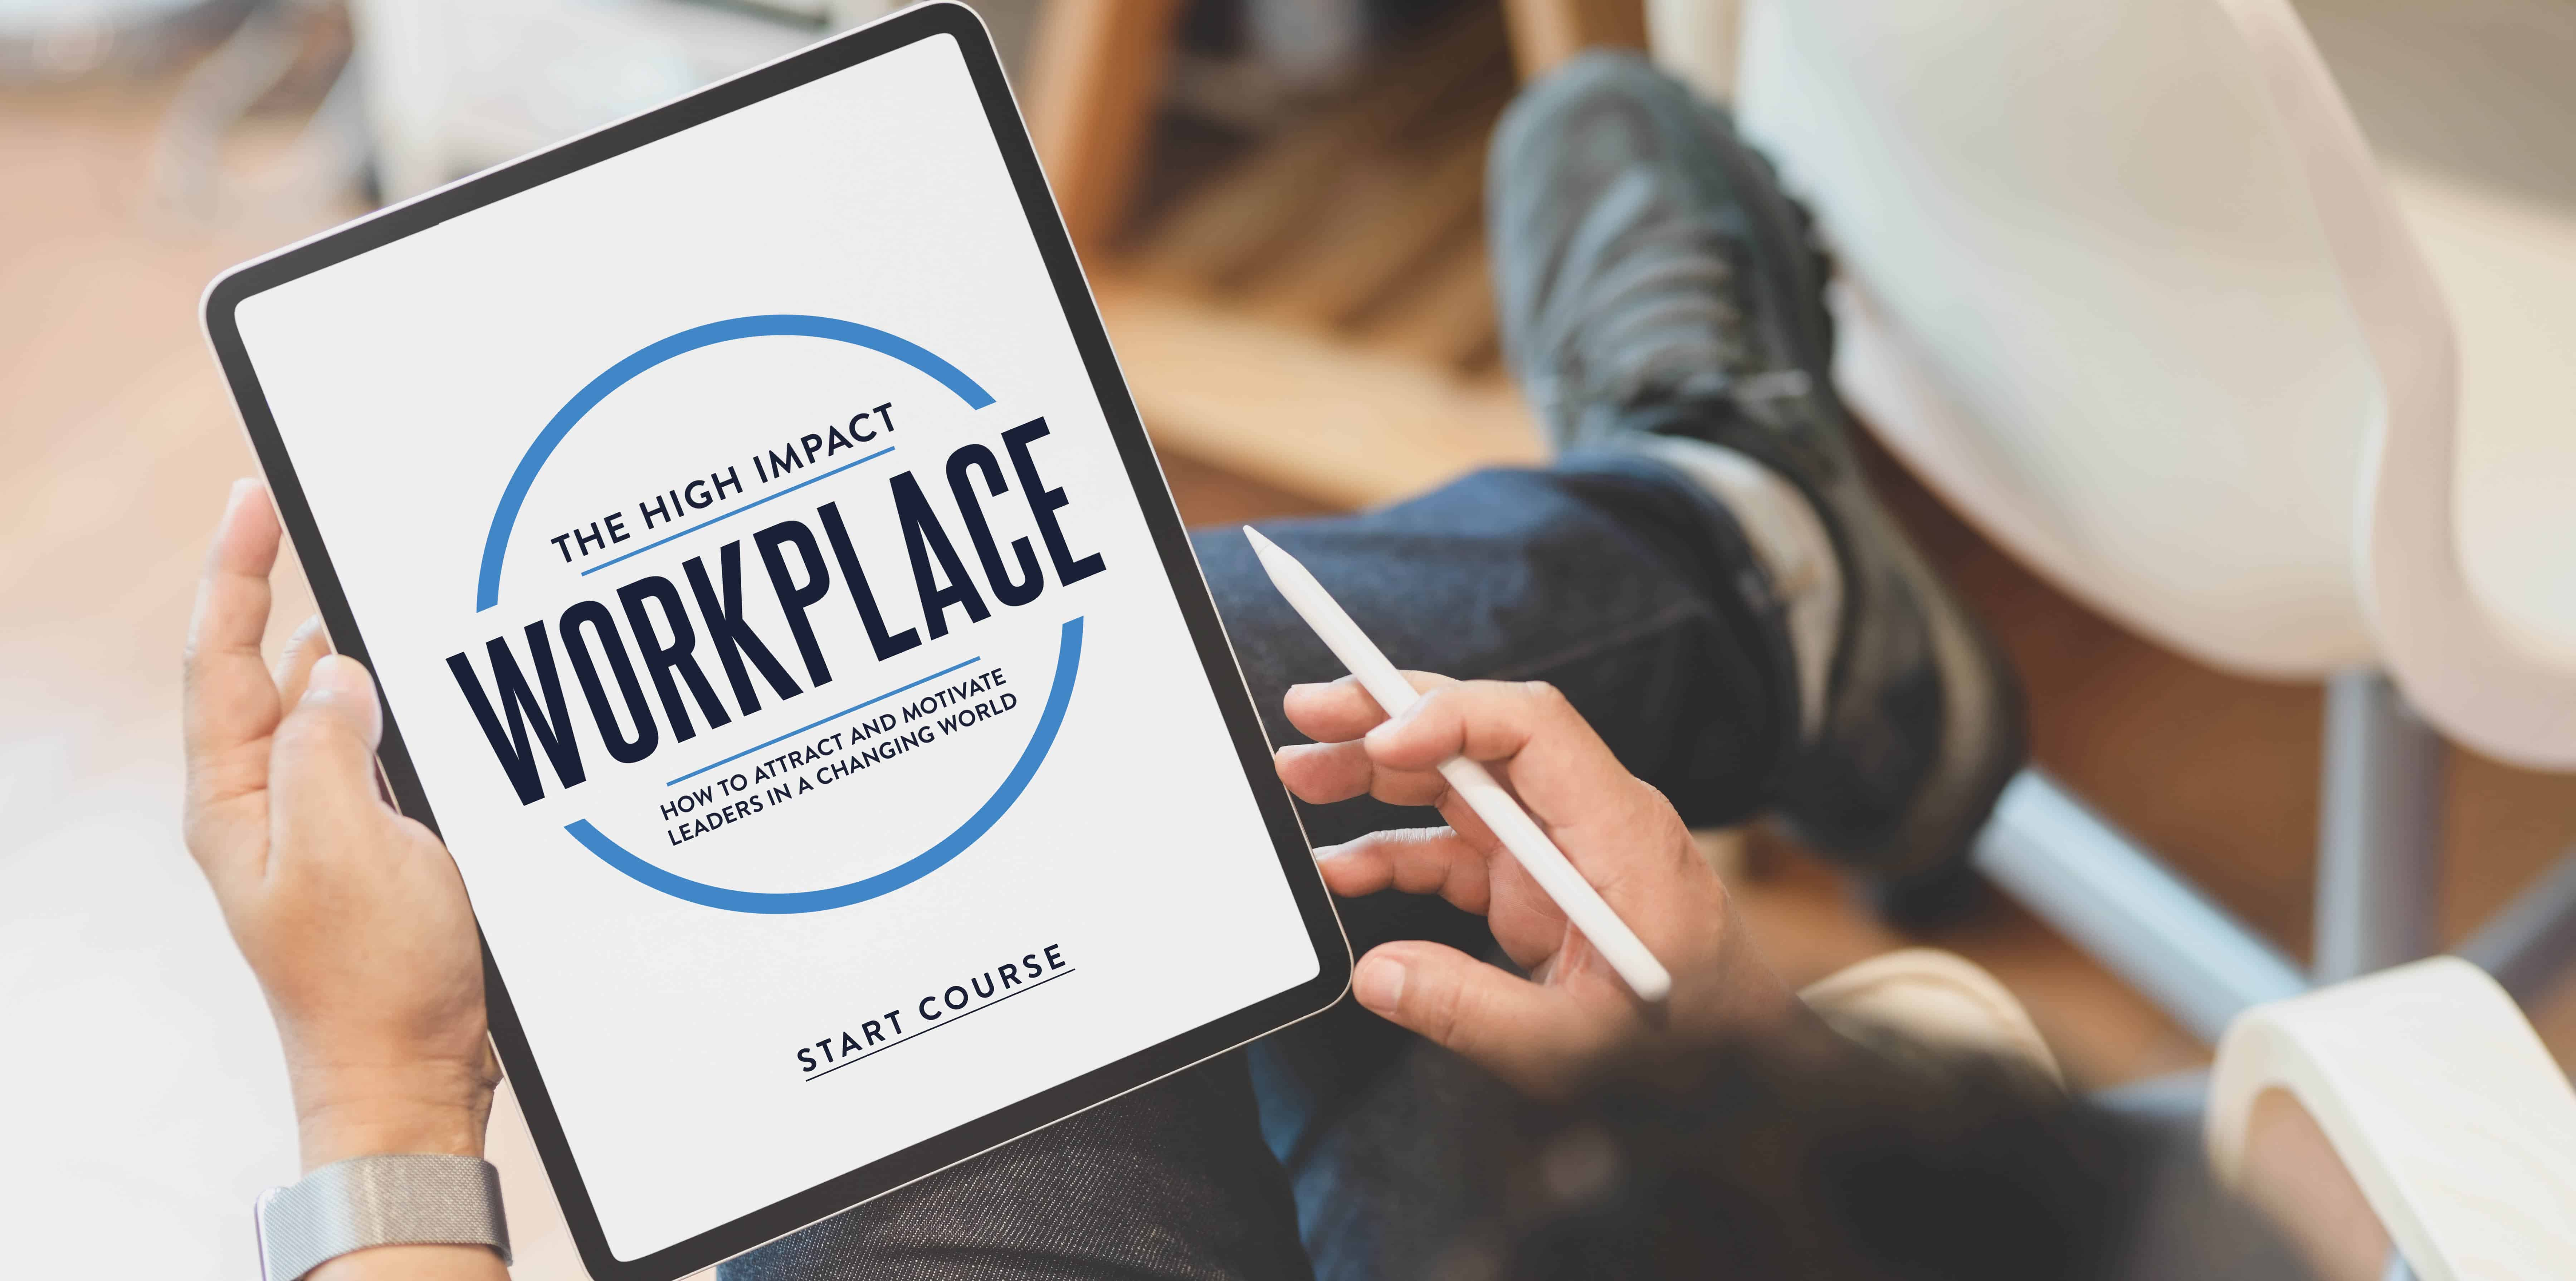 The High Impact Workplace